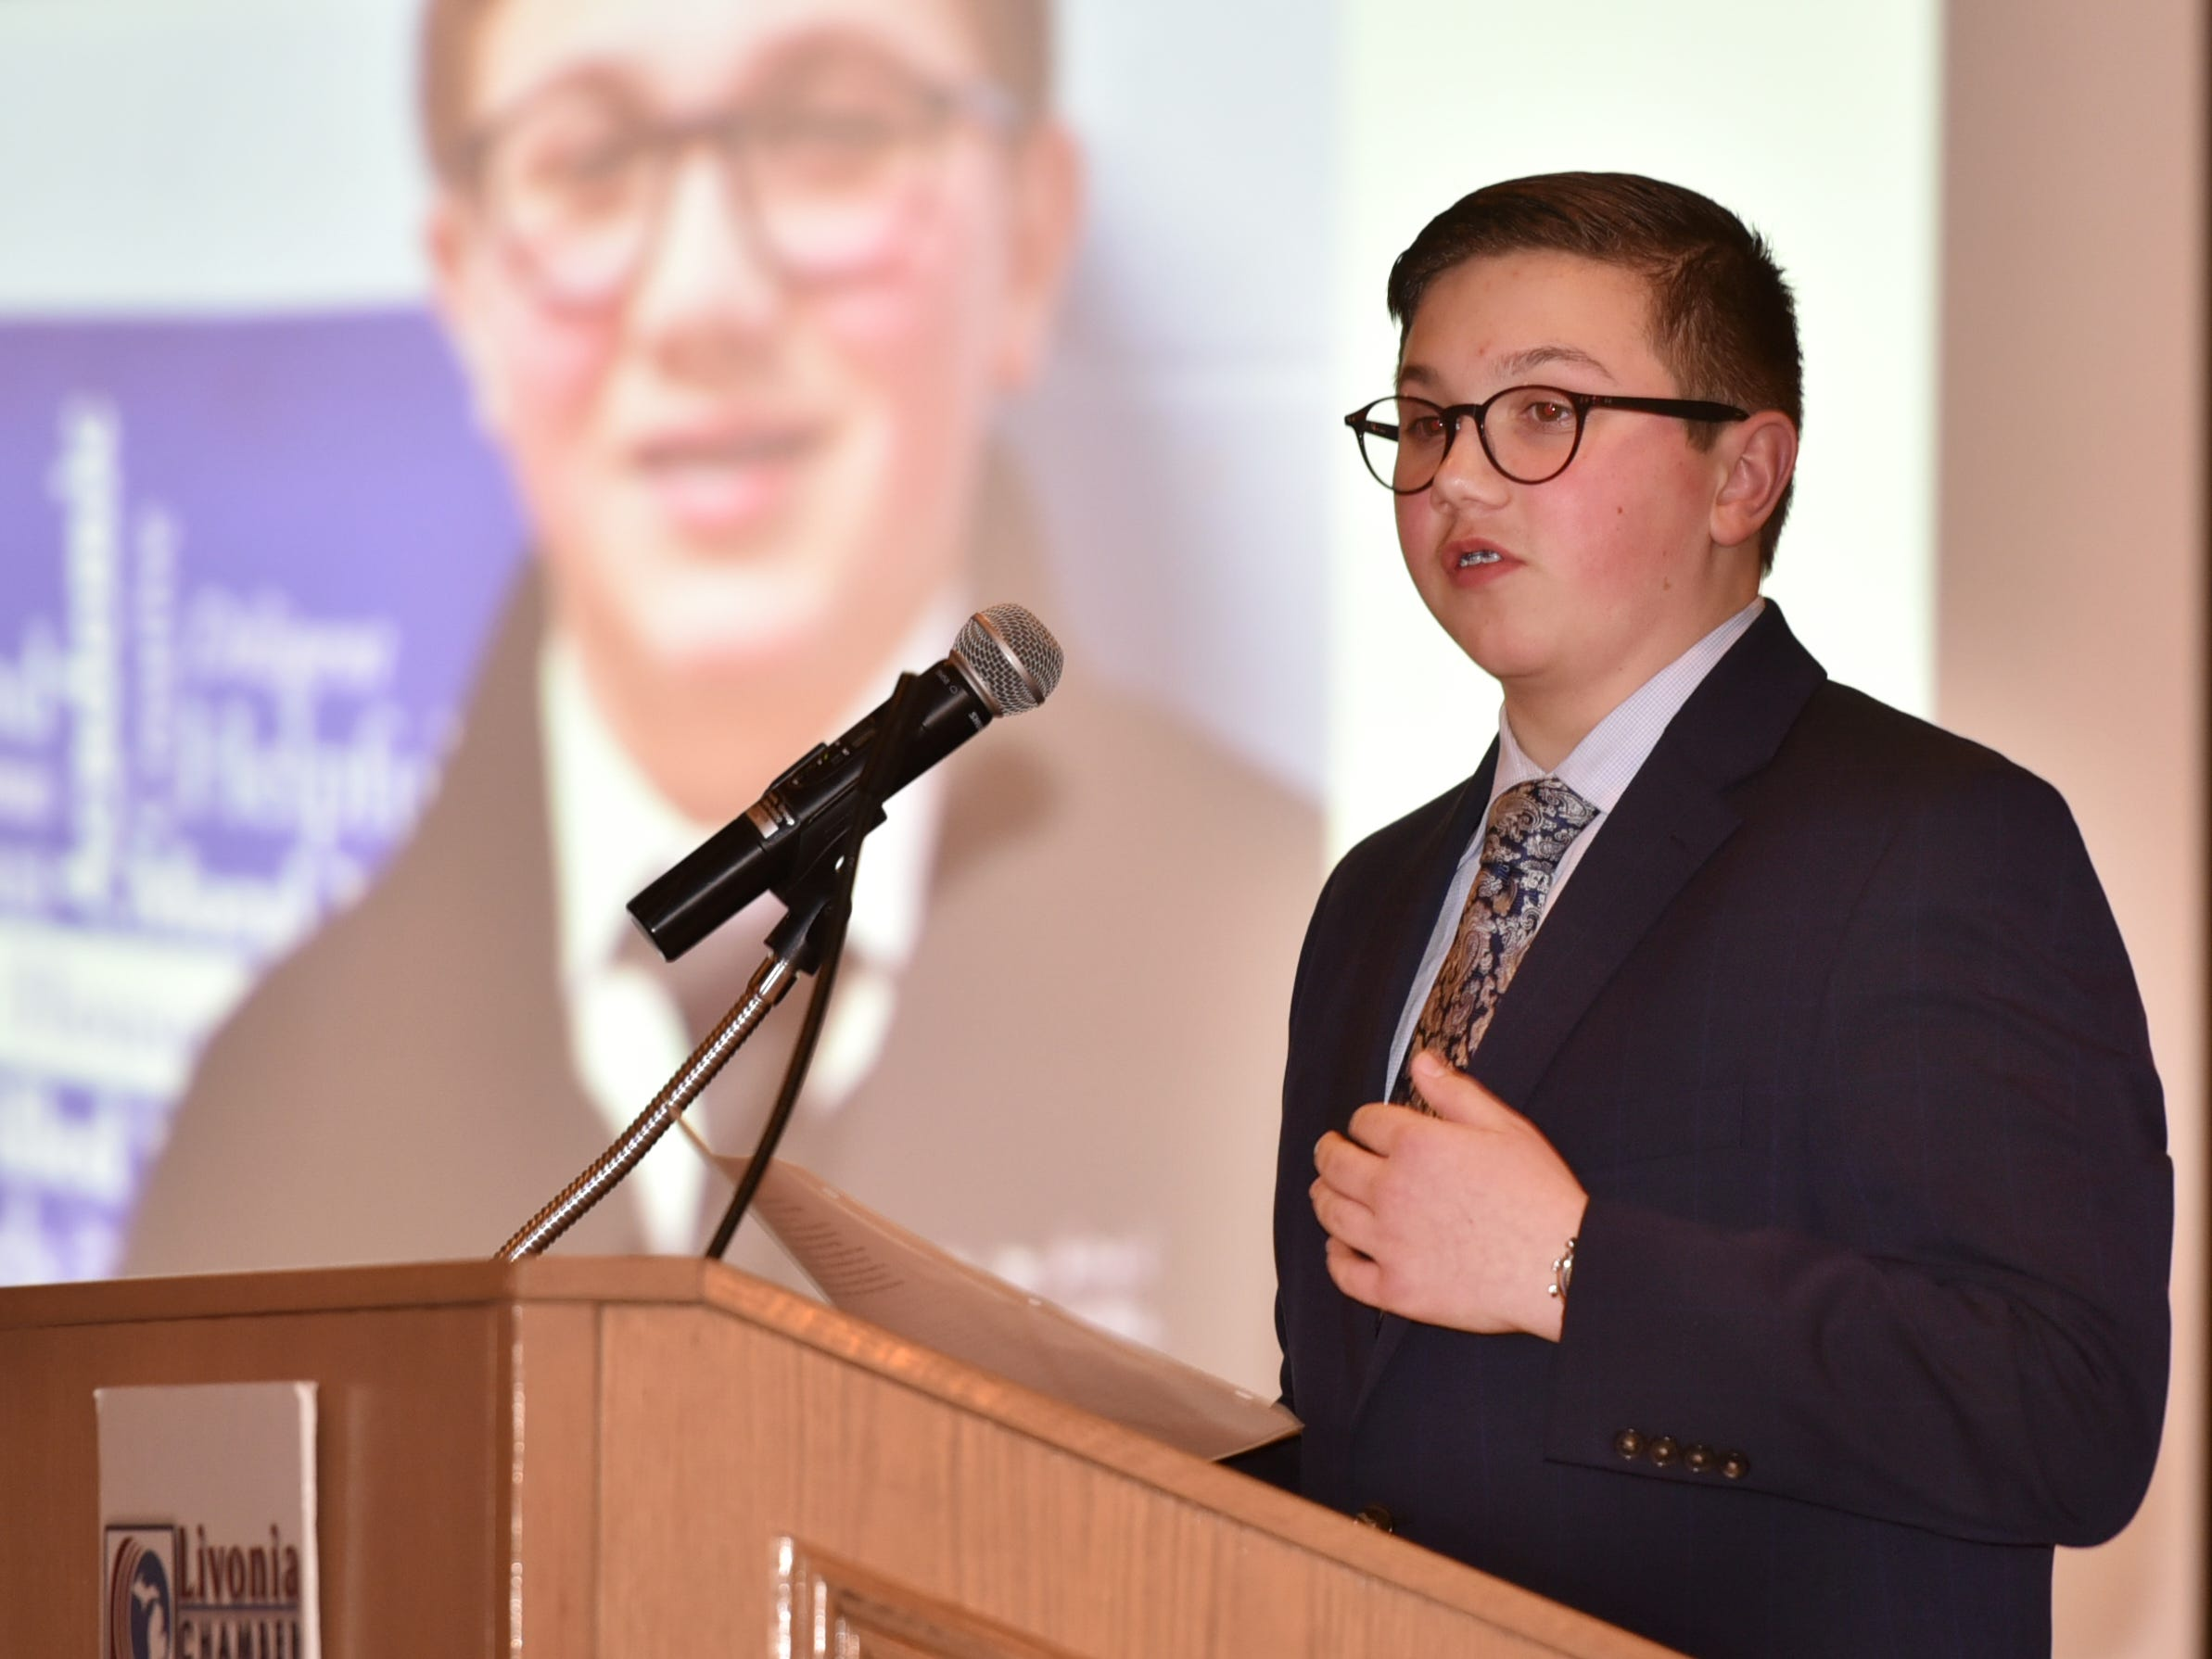 Thirteen year-old David Kibbey has a few remarks after being awarded the Outstanding Youth Award at the Feb. 21 ceremony.